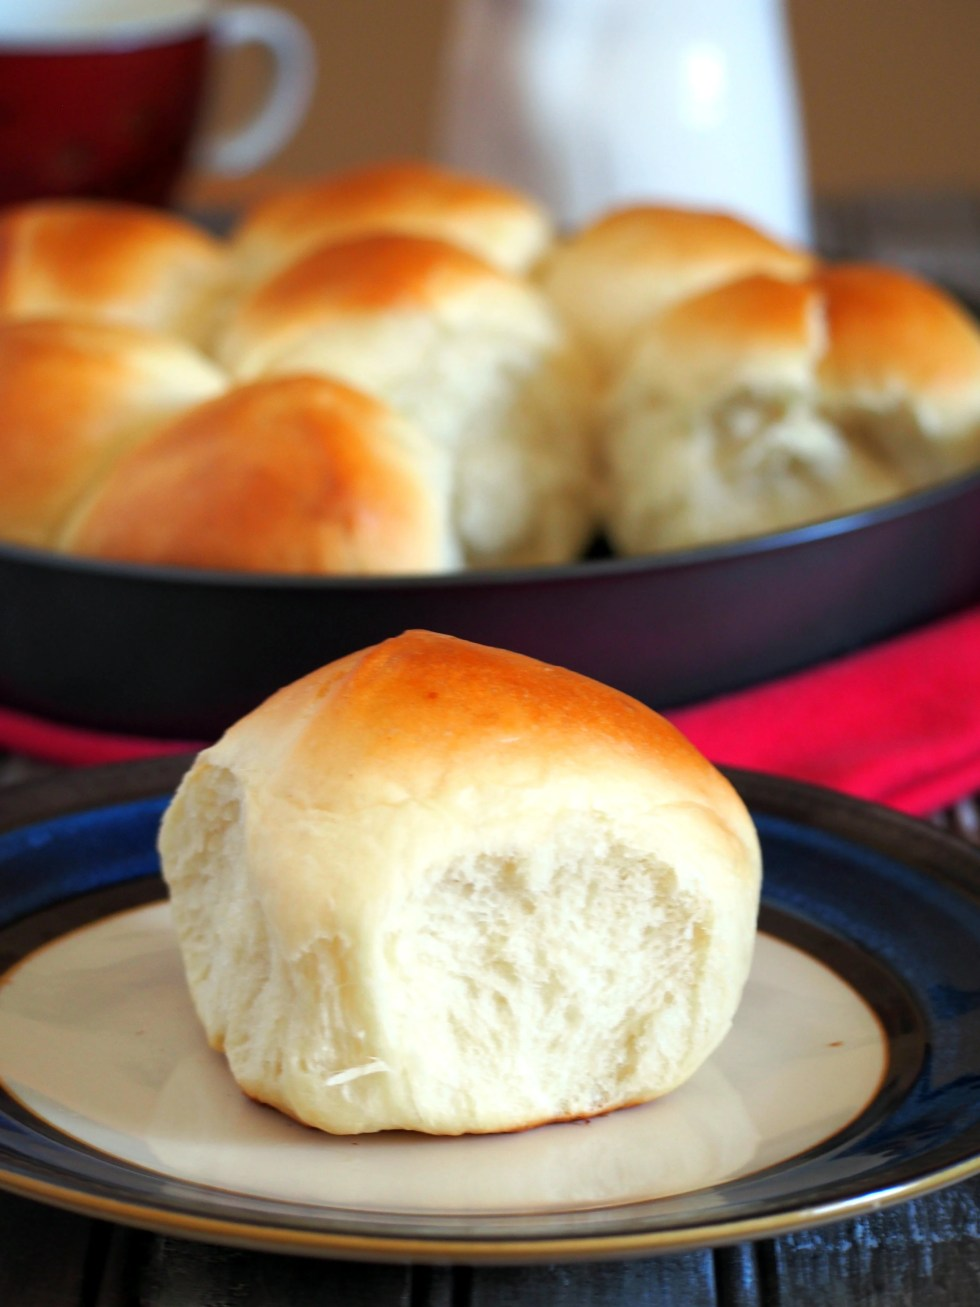 Japanese Milk Buns are known for their distinct, milky taste and their soft, melt in your mouth texture. These soft dinner rolls are perfect with any kind of jam or spread but are delicious on their own.